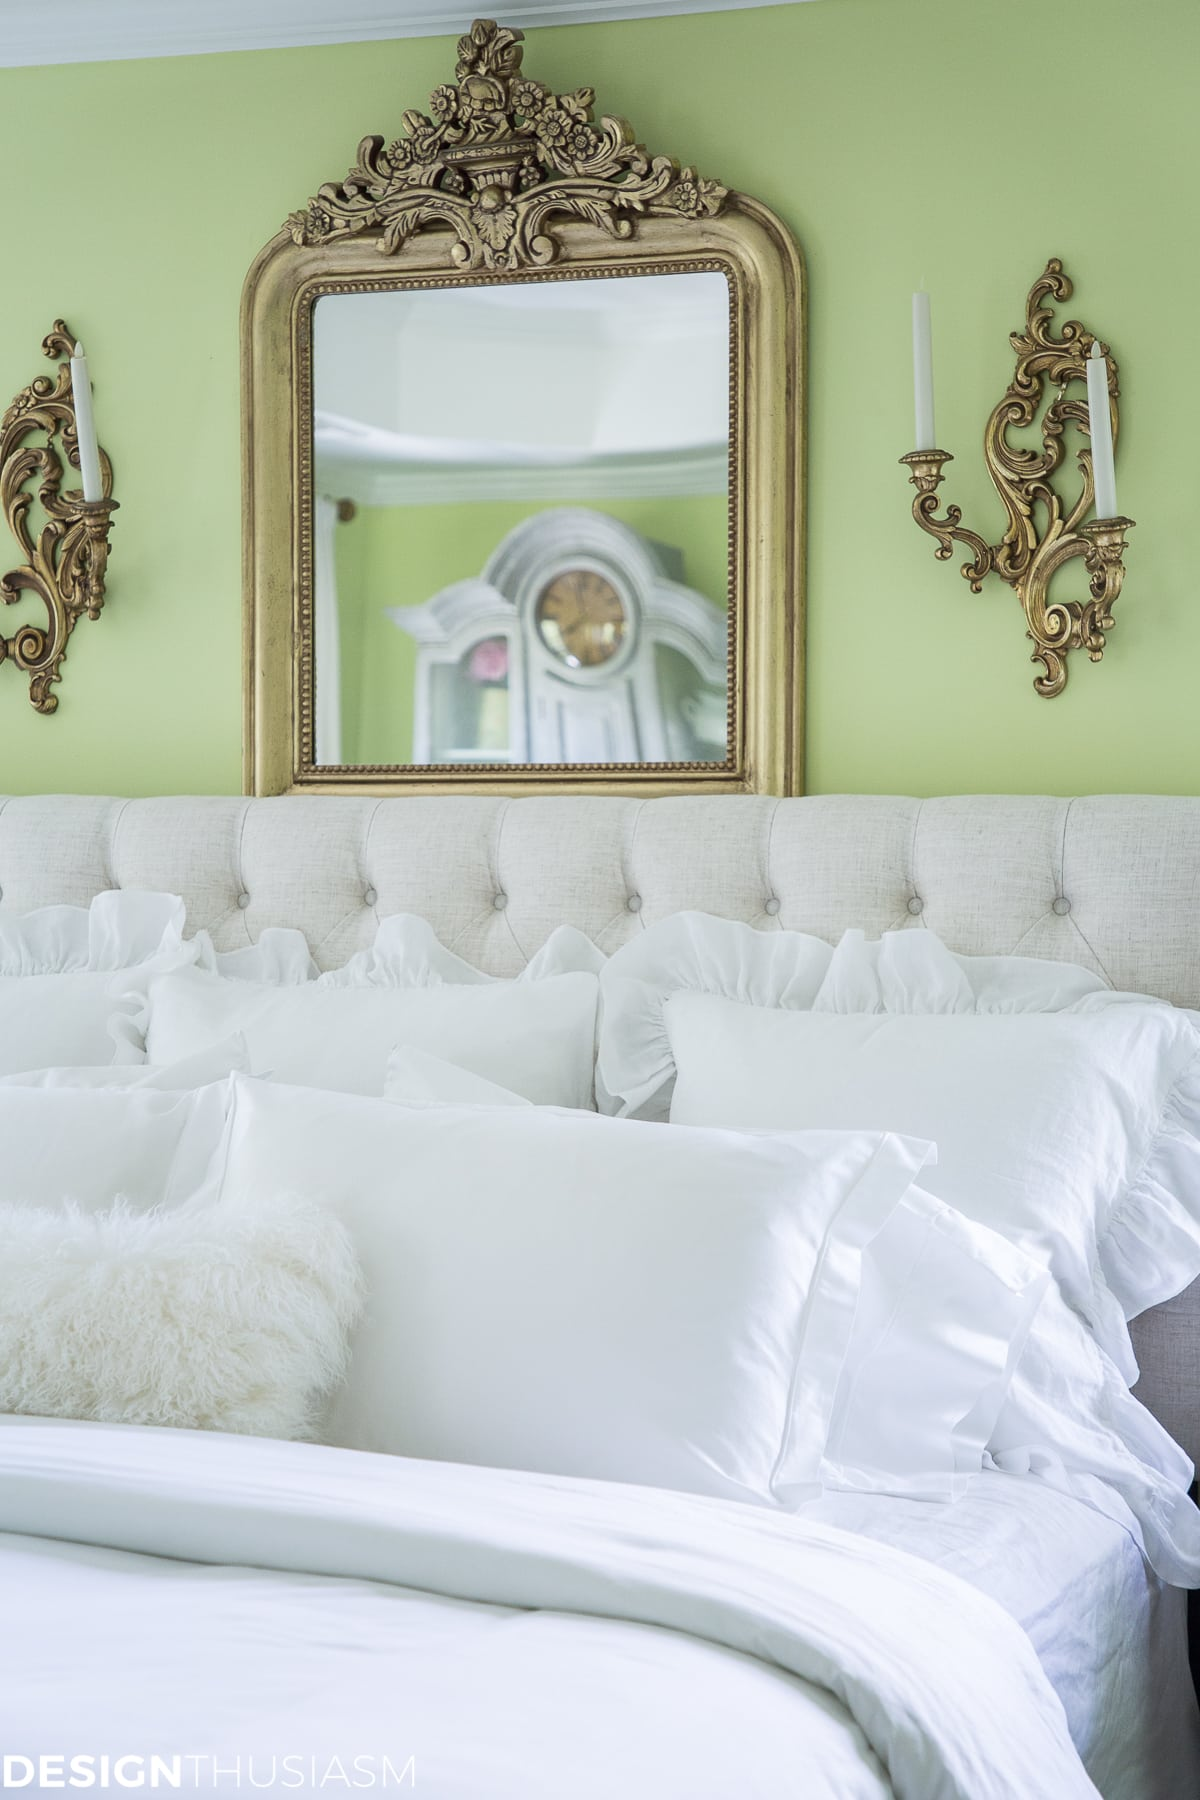 luxury white bedding with gilded mirror and sconces